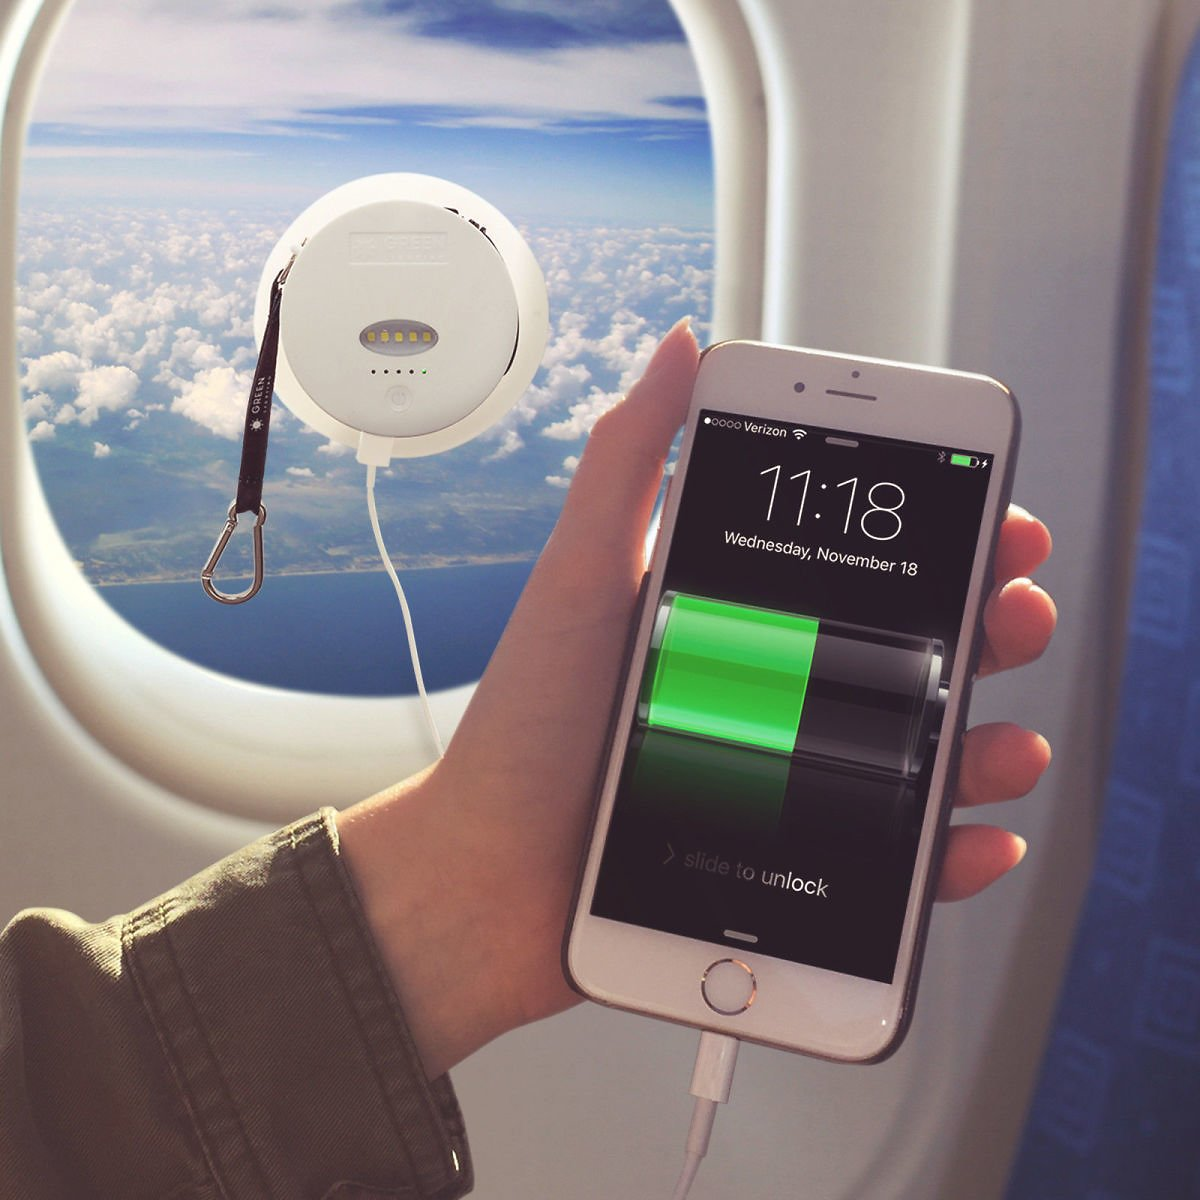 Hot Portable Power Banks 6000 MAh Solar Powered Phone Charger External Battery for Sale Online